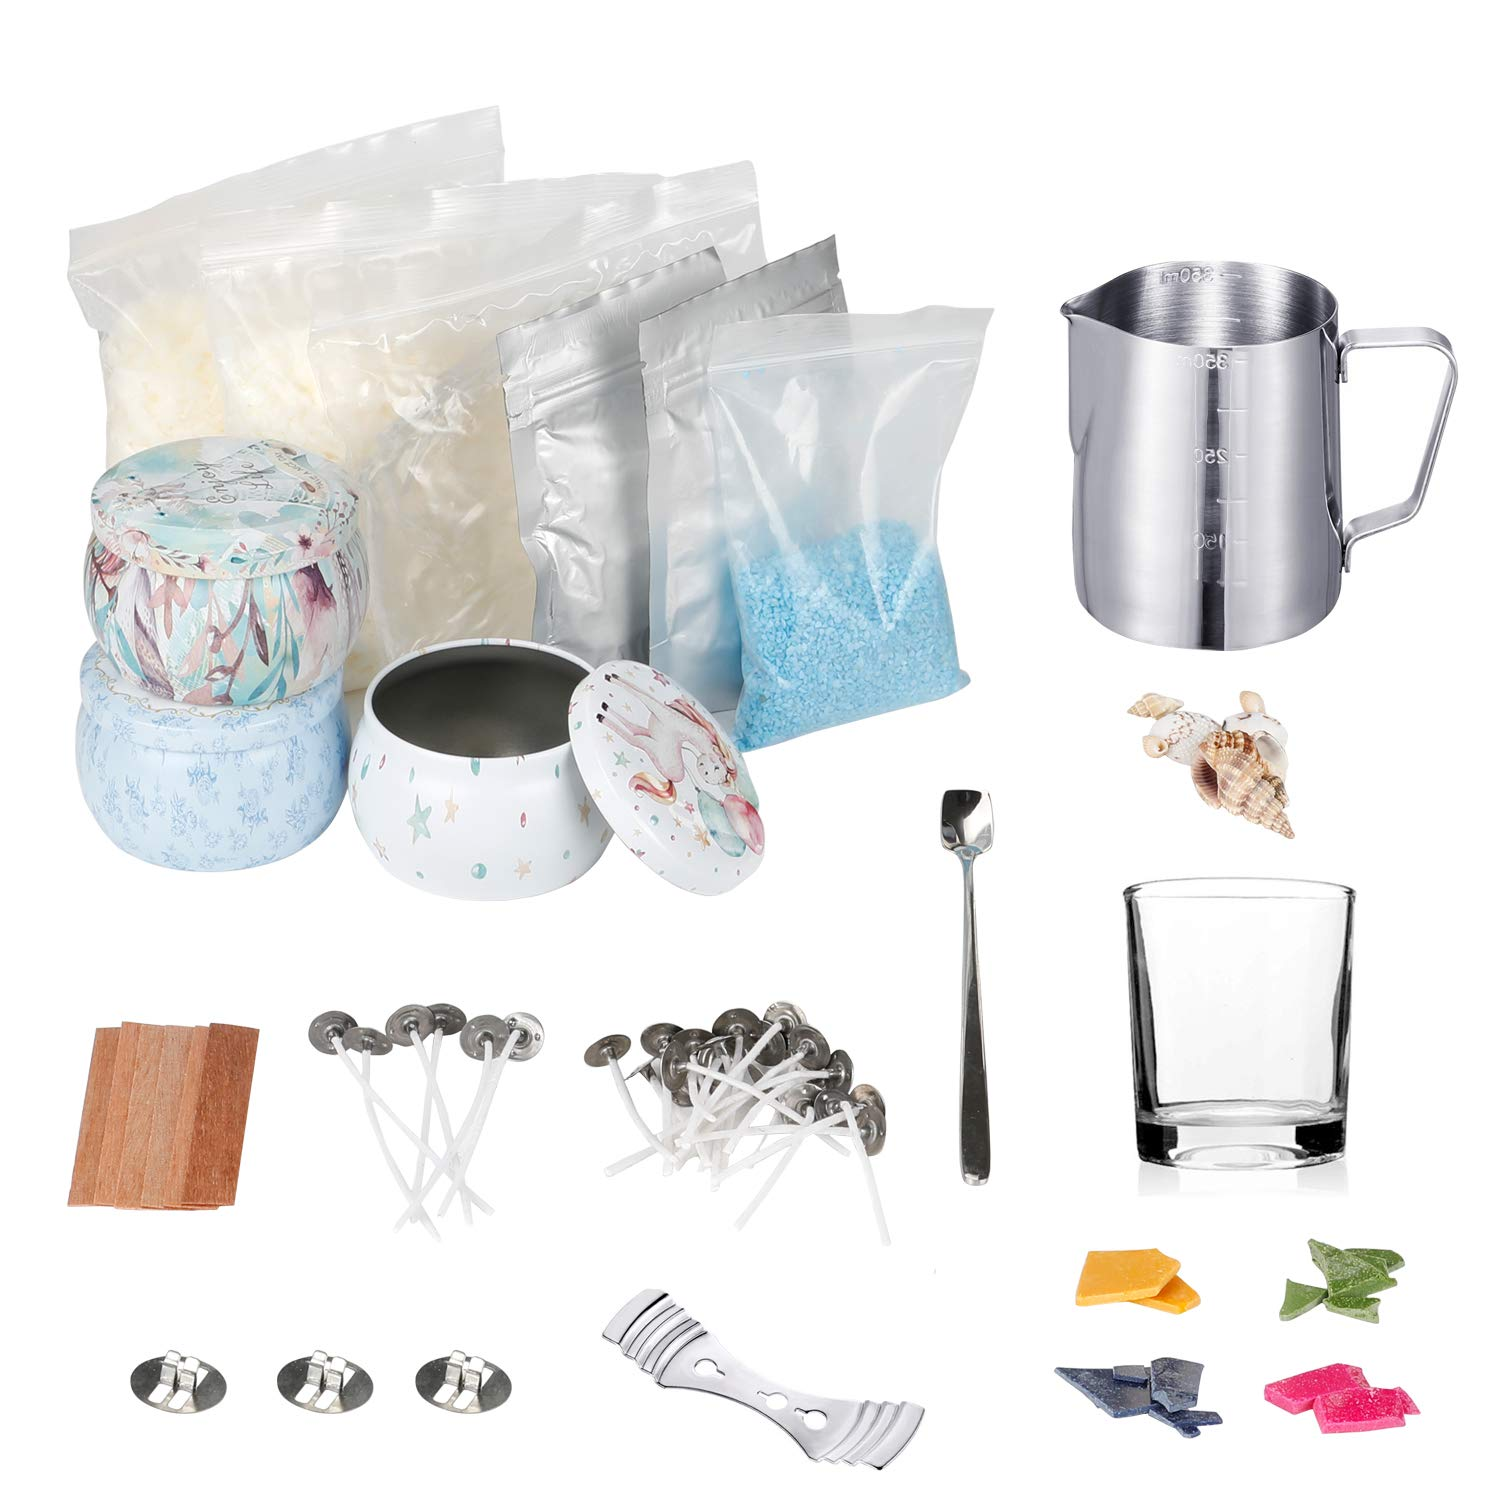 Soy Wax Candle Making Kit Complete Soy Candle Making Kit DIY Candle Making Kit- All-Natural Soy Wax, Melting Pot, Candle Tins, Dye Blocks, Solid Essential Oil, Stirring Spoon, Wax Wick and More